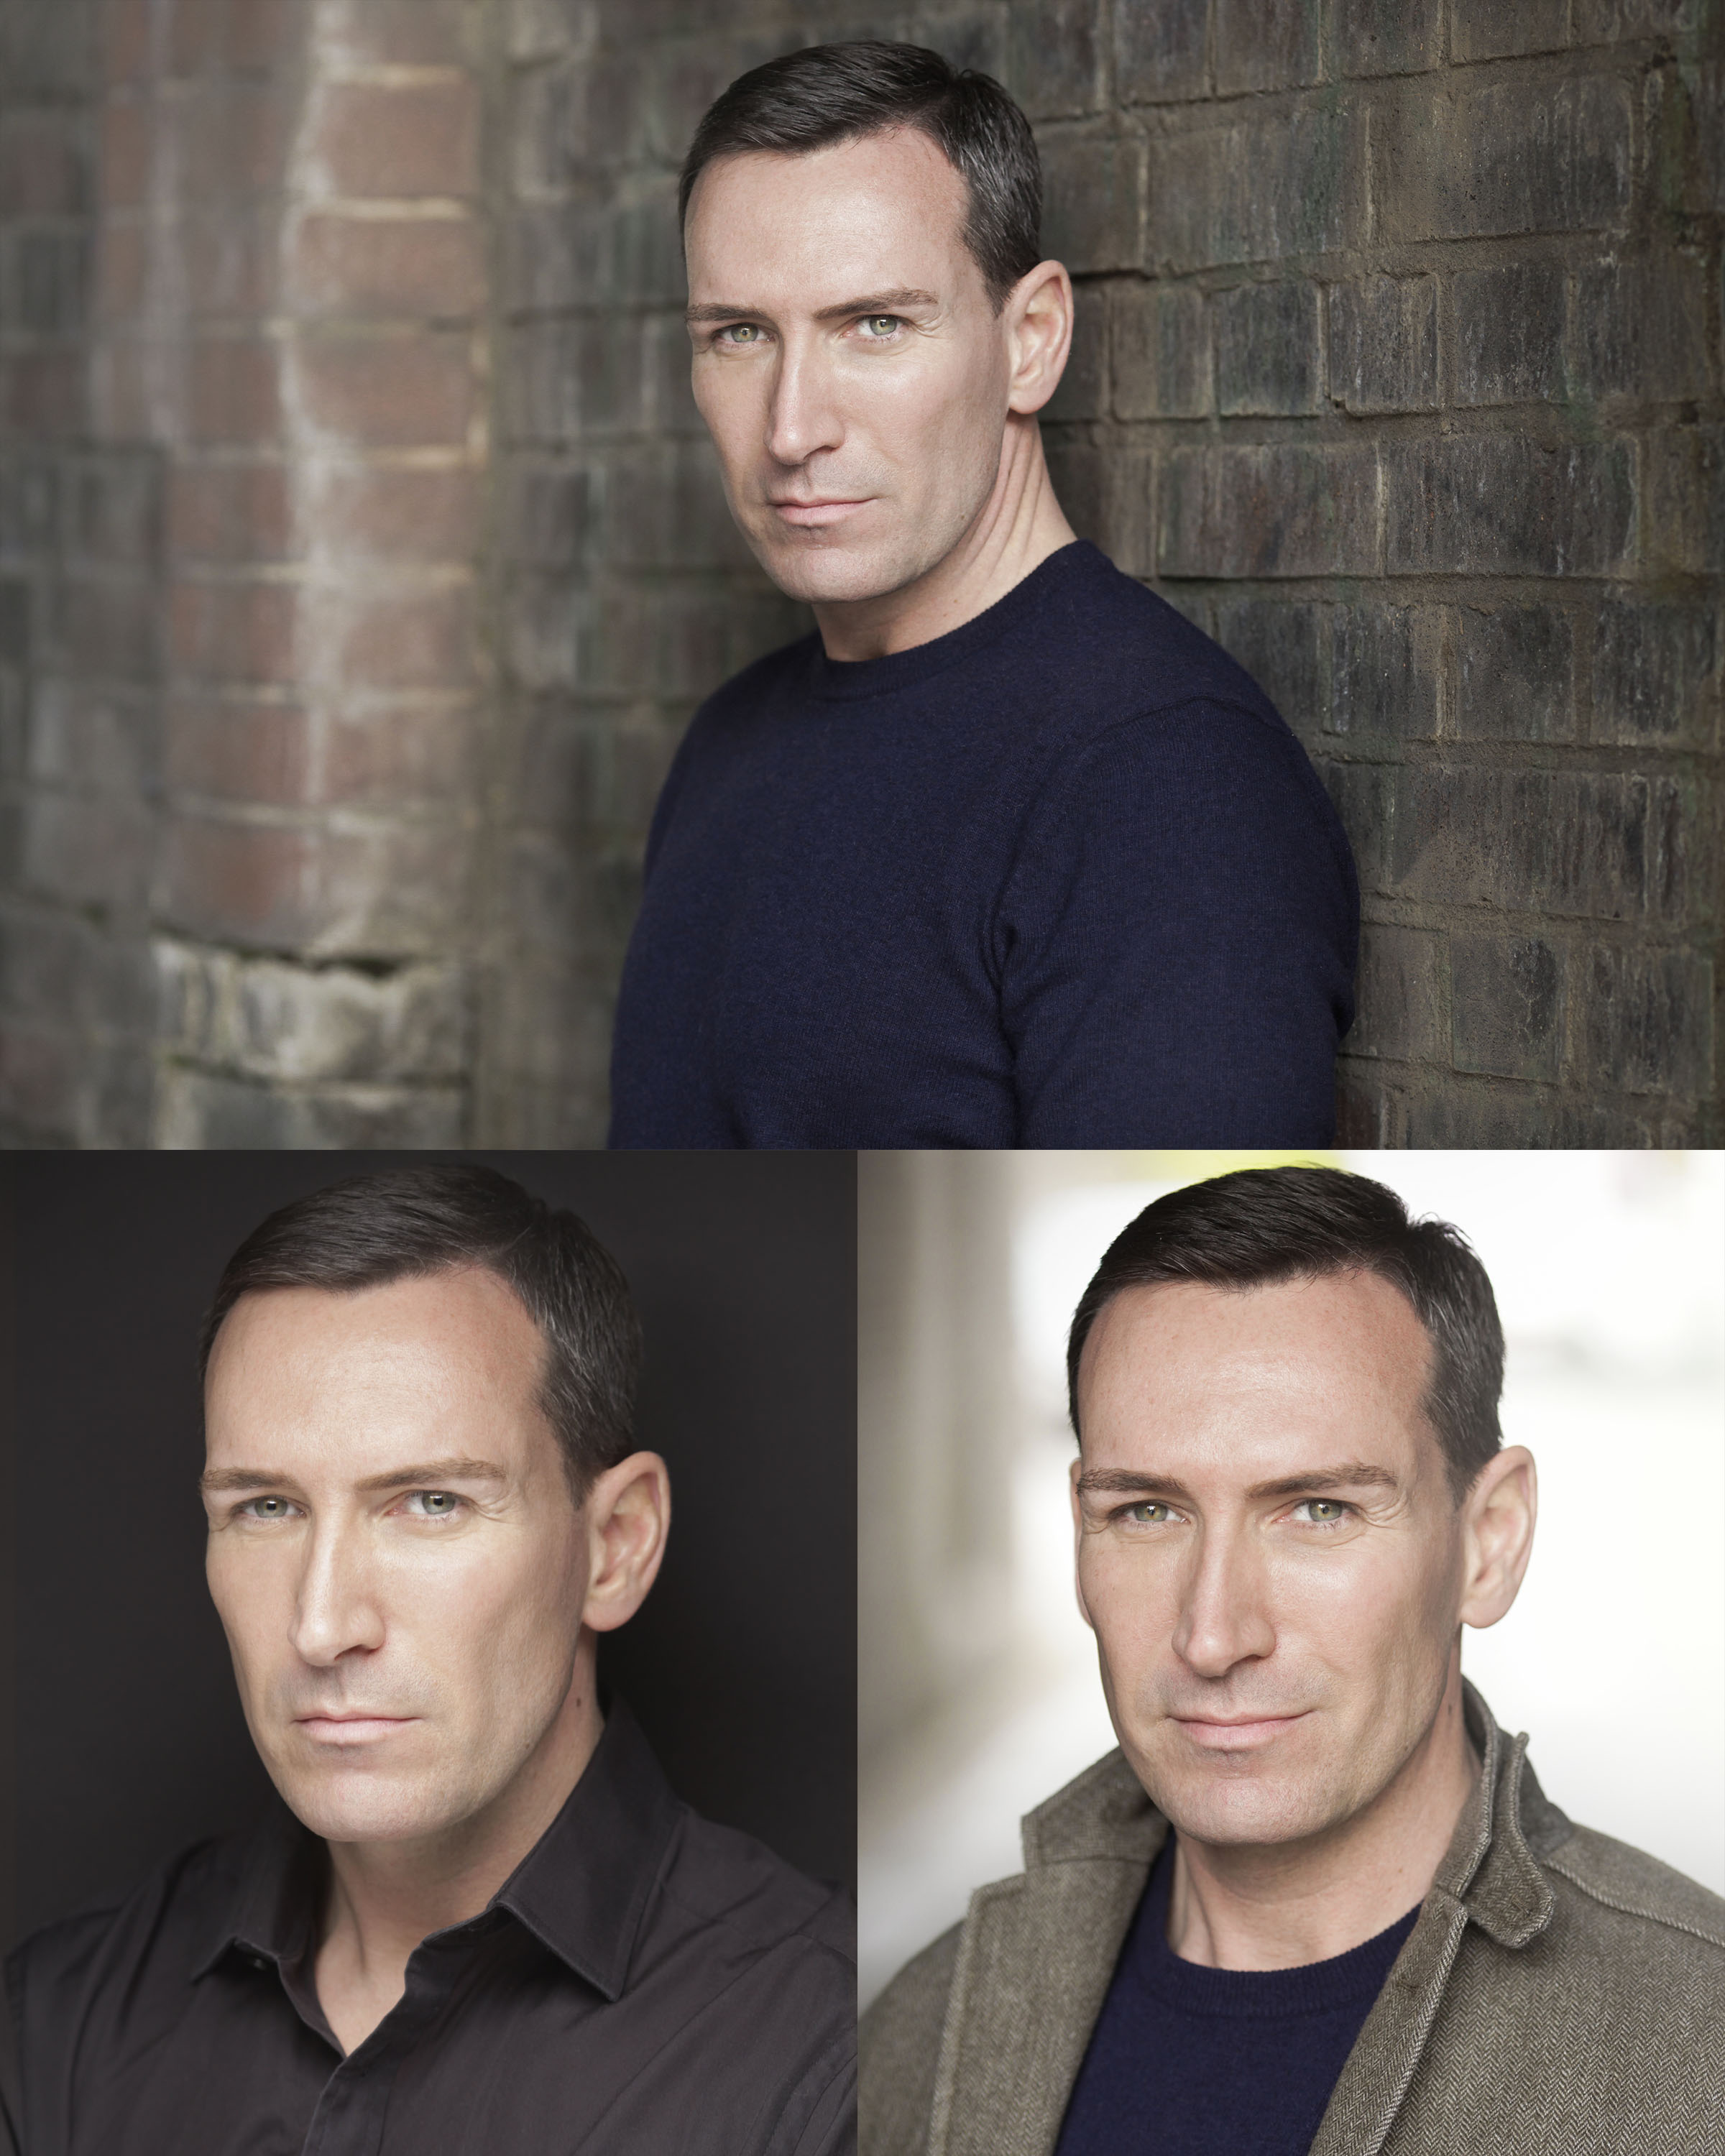 male actor headshot london photographer.jpg